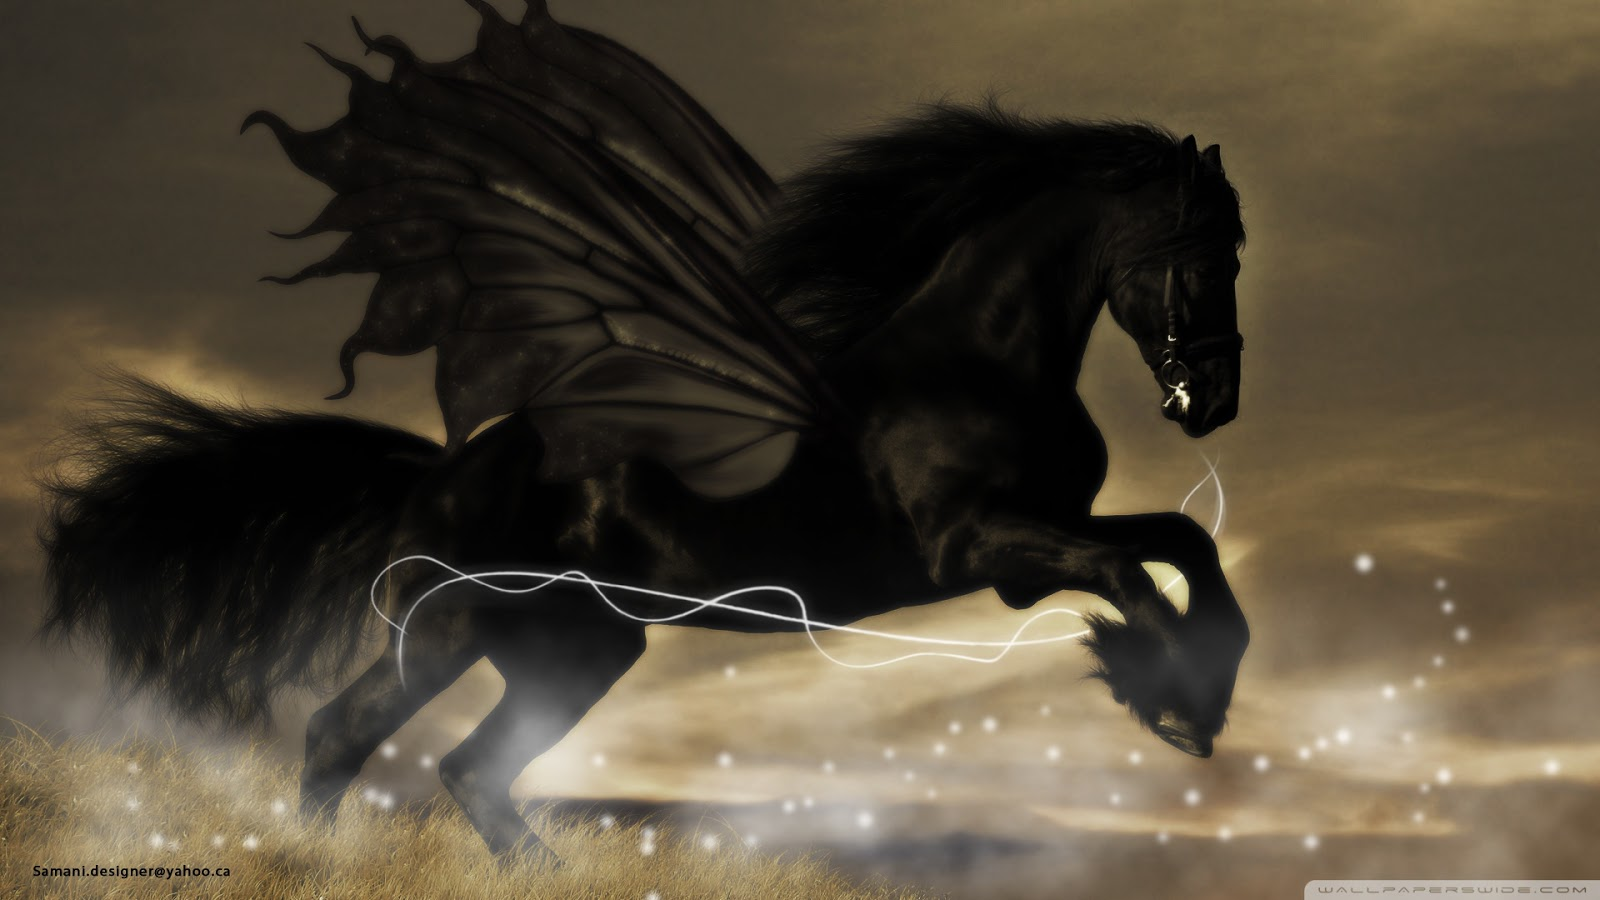 Cool   Wallpaper Horse Mustang - black+horse+27  Graphic_80713.jpg